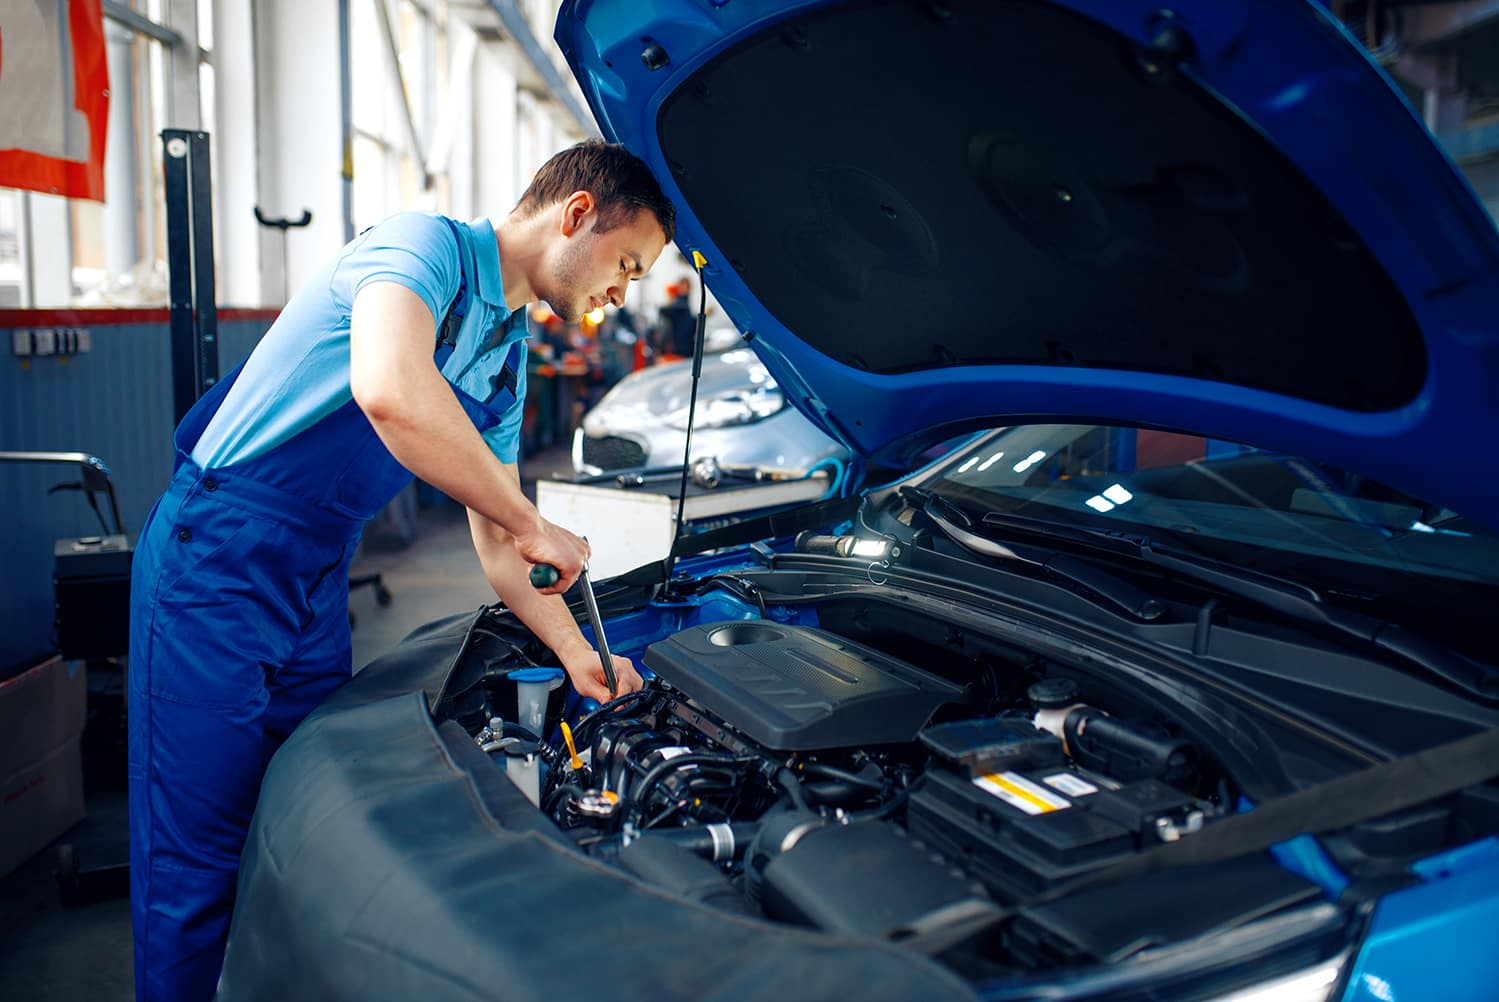 Jim Coleman Automotive is a Luxury Auto Group in Bethesda near Washington DC | Man working under hood of car